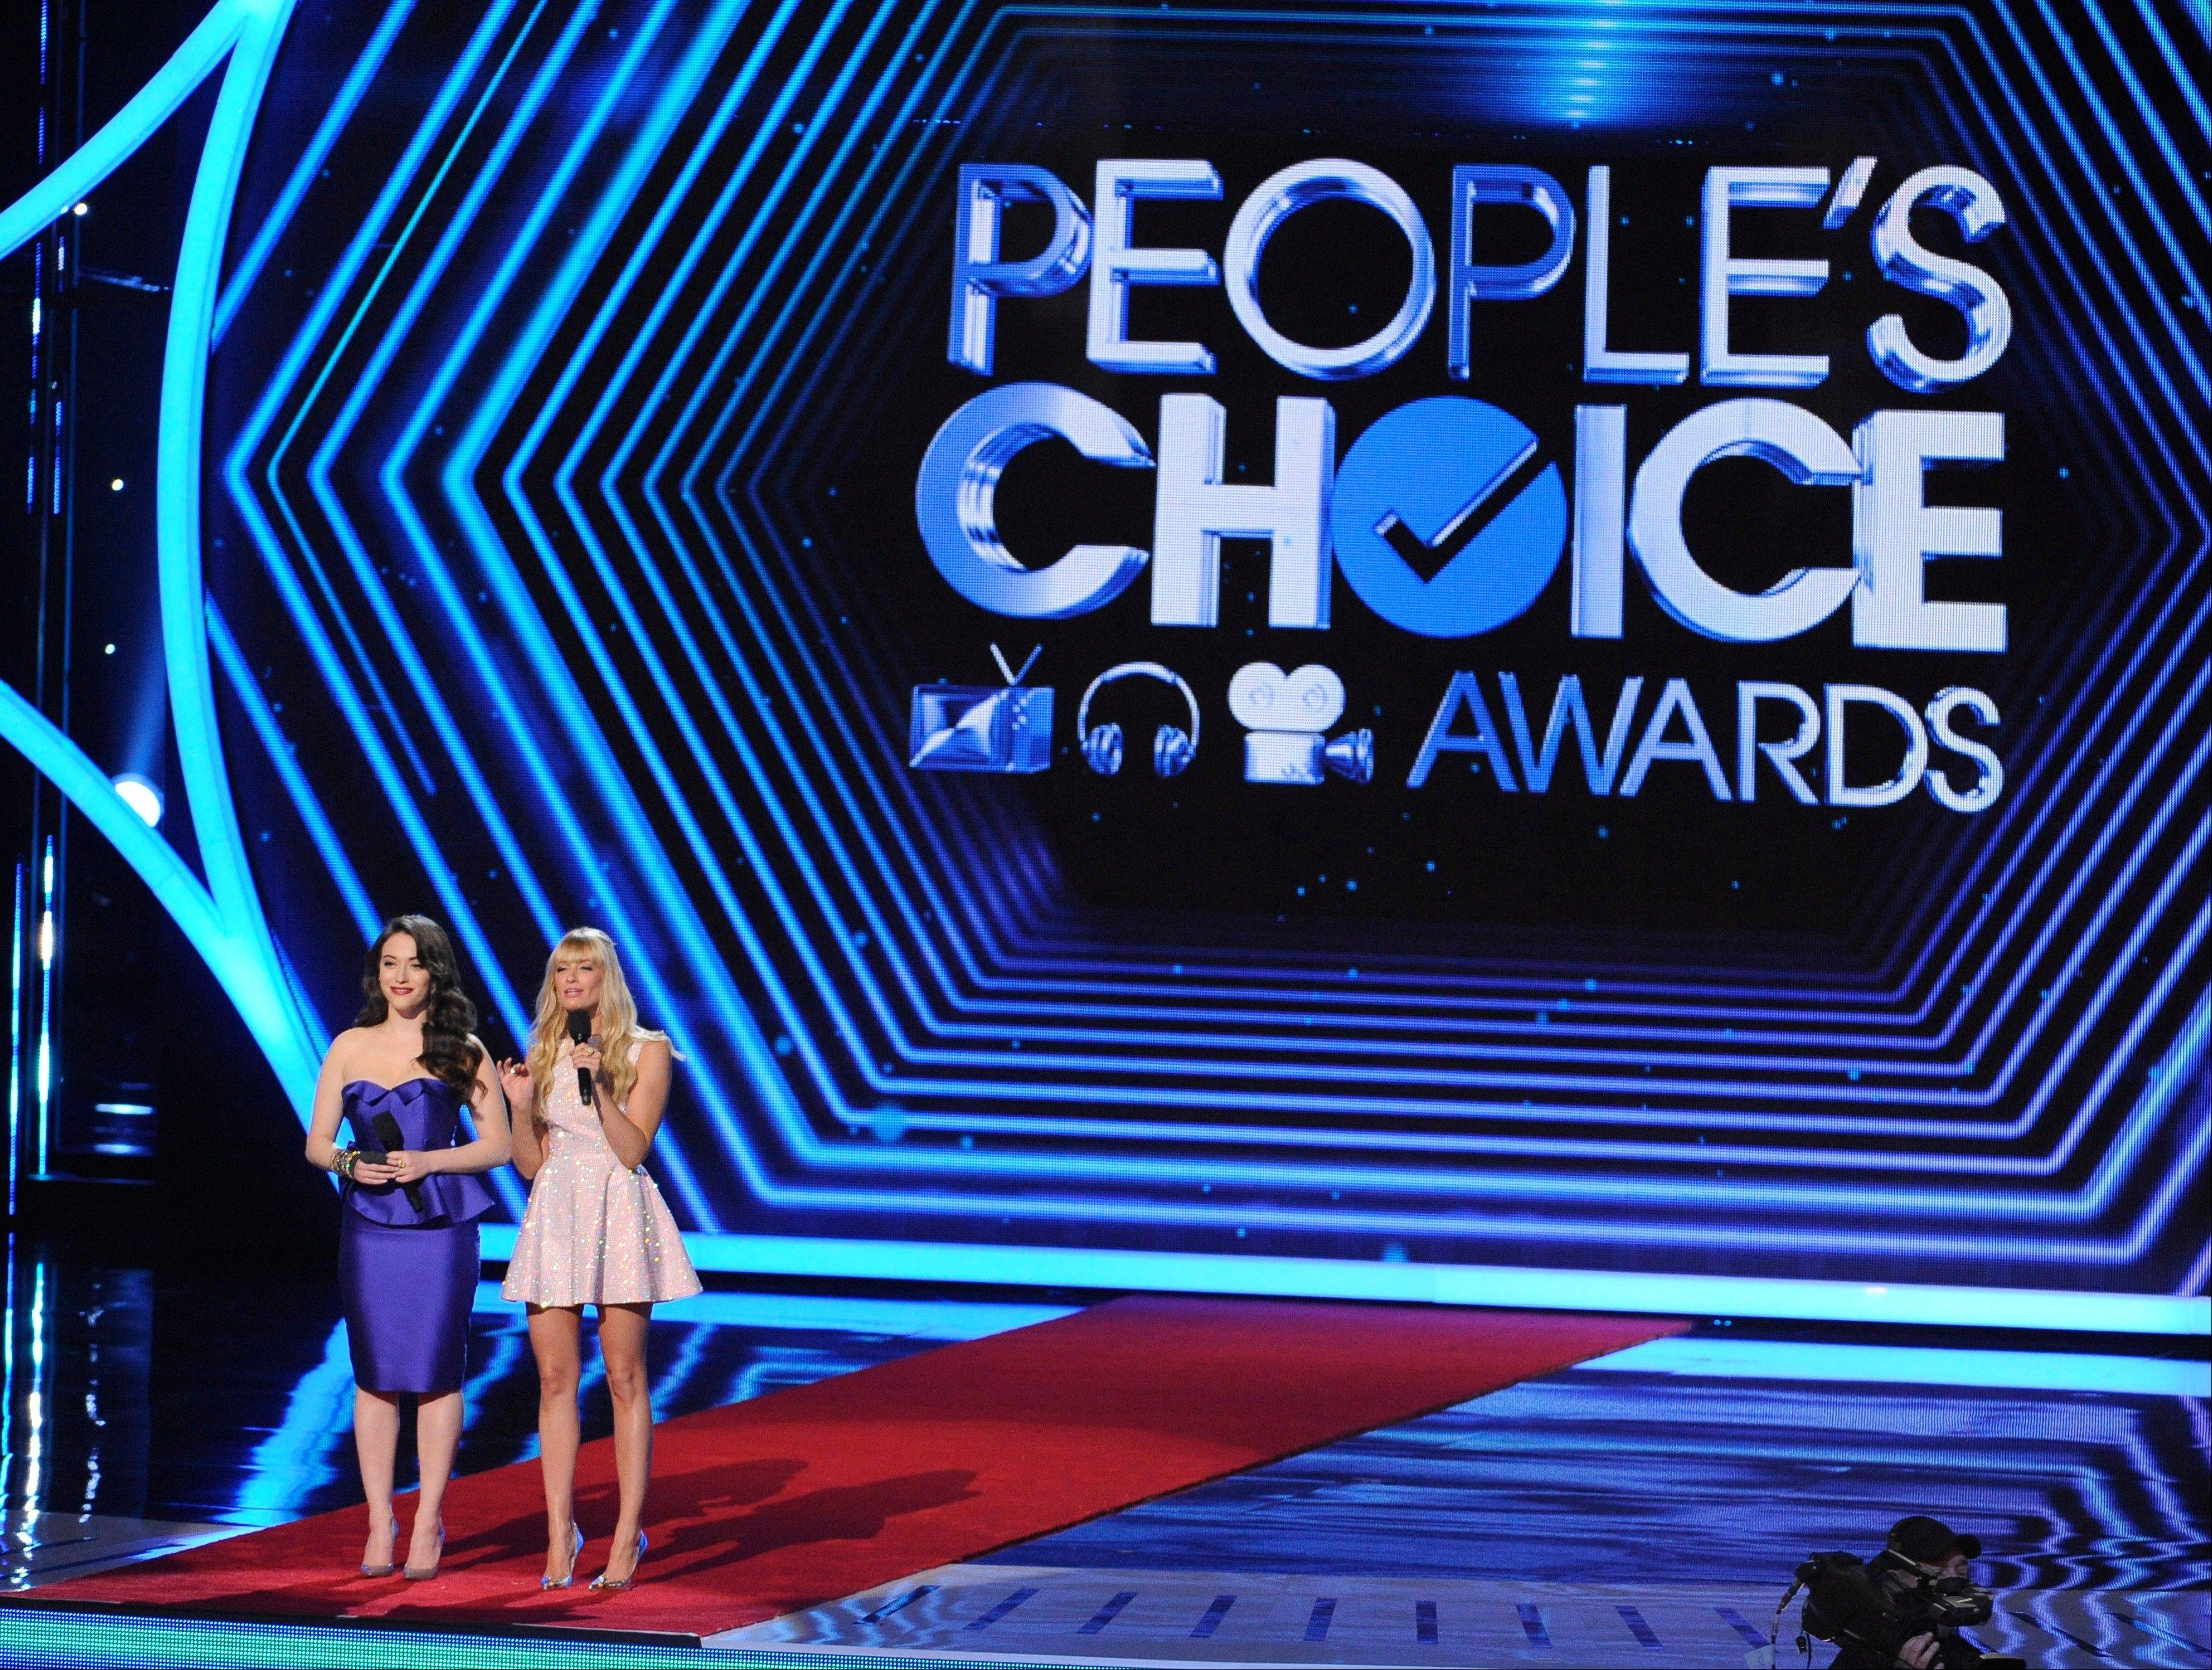 Associated PressHosts Kat Dennings, left, and Beth Behrs speak on stage at the 40th annual People's Choice Awards at the Nokia Theatre L.A. Live on Wednesday, Jan. 8, 2014, in Los Angeles.